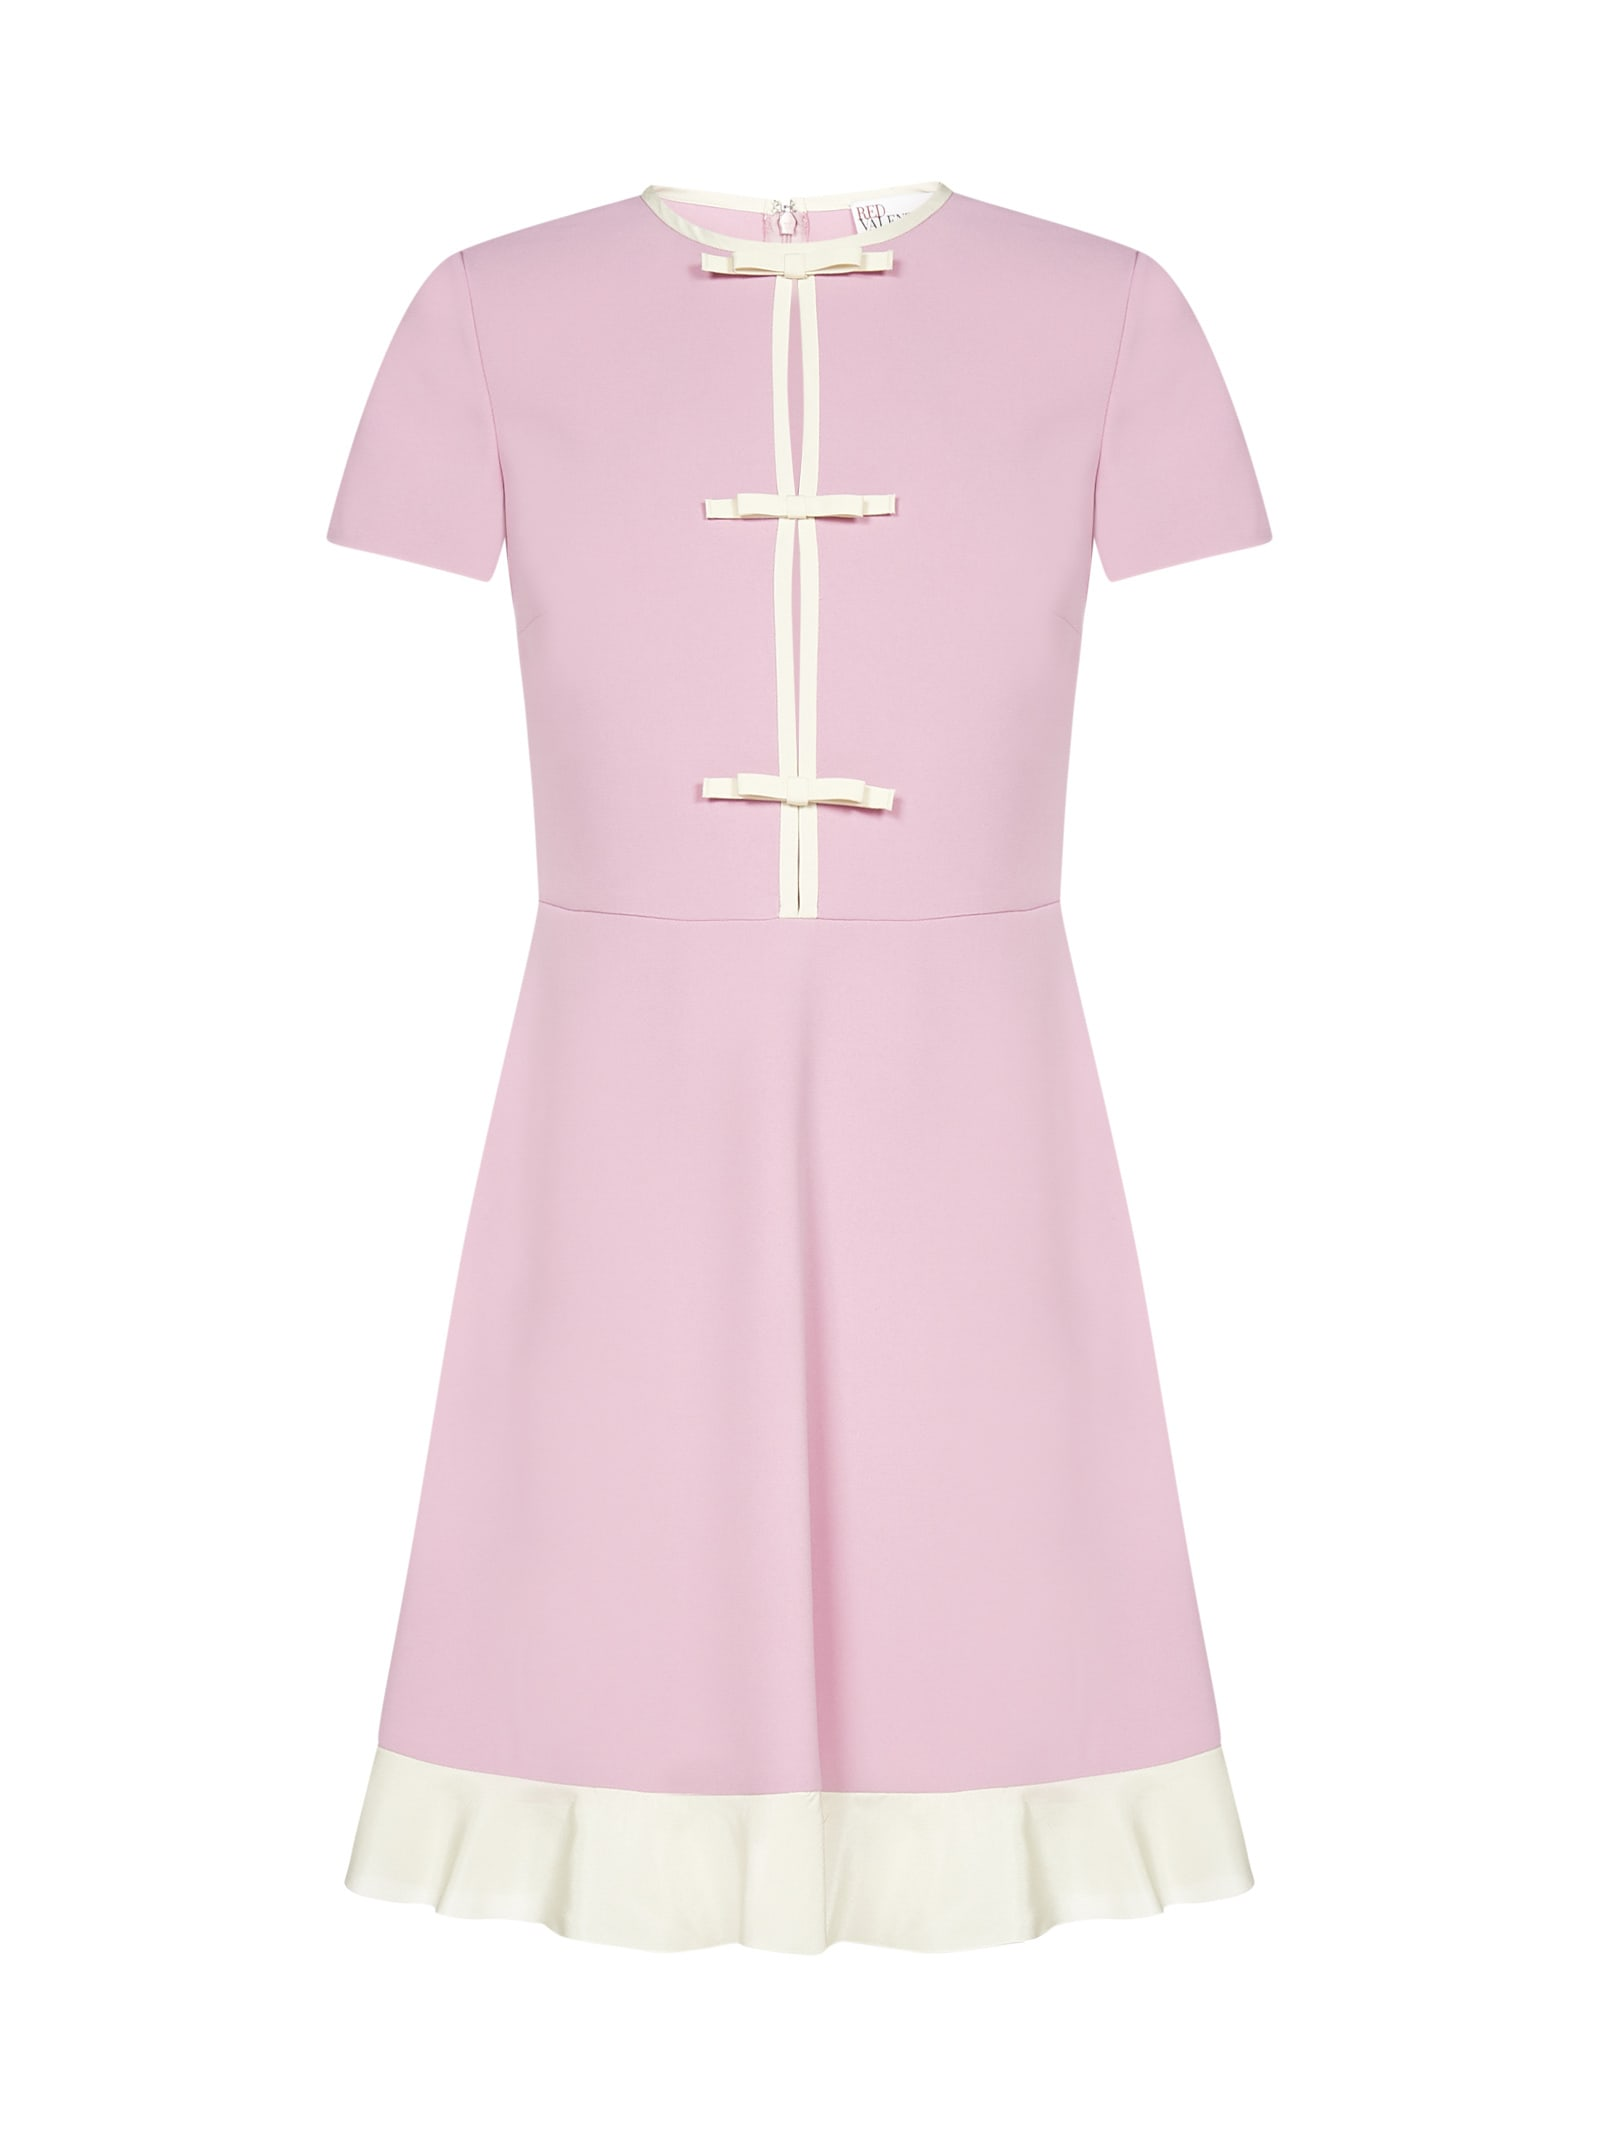 Buy RED Valentino Bow And Ruffle-detail Dress online, shop RED Valentino with free shipping